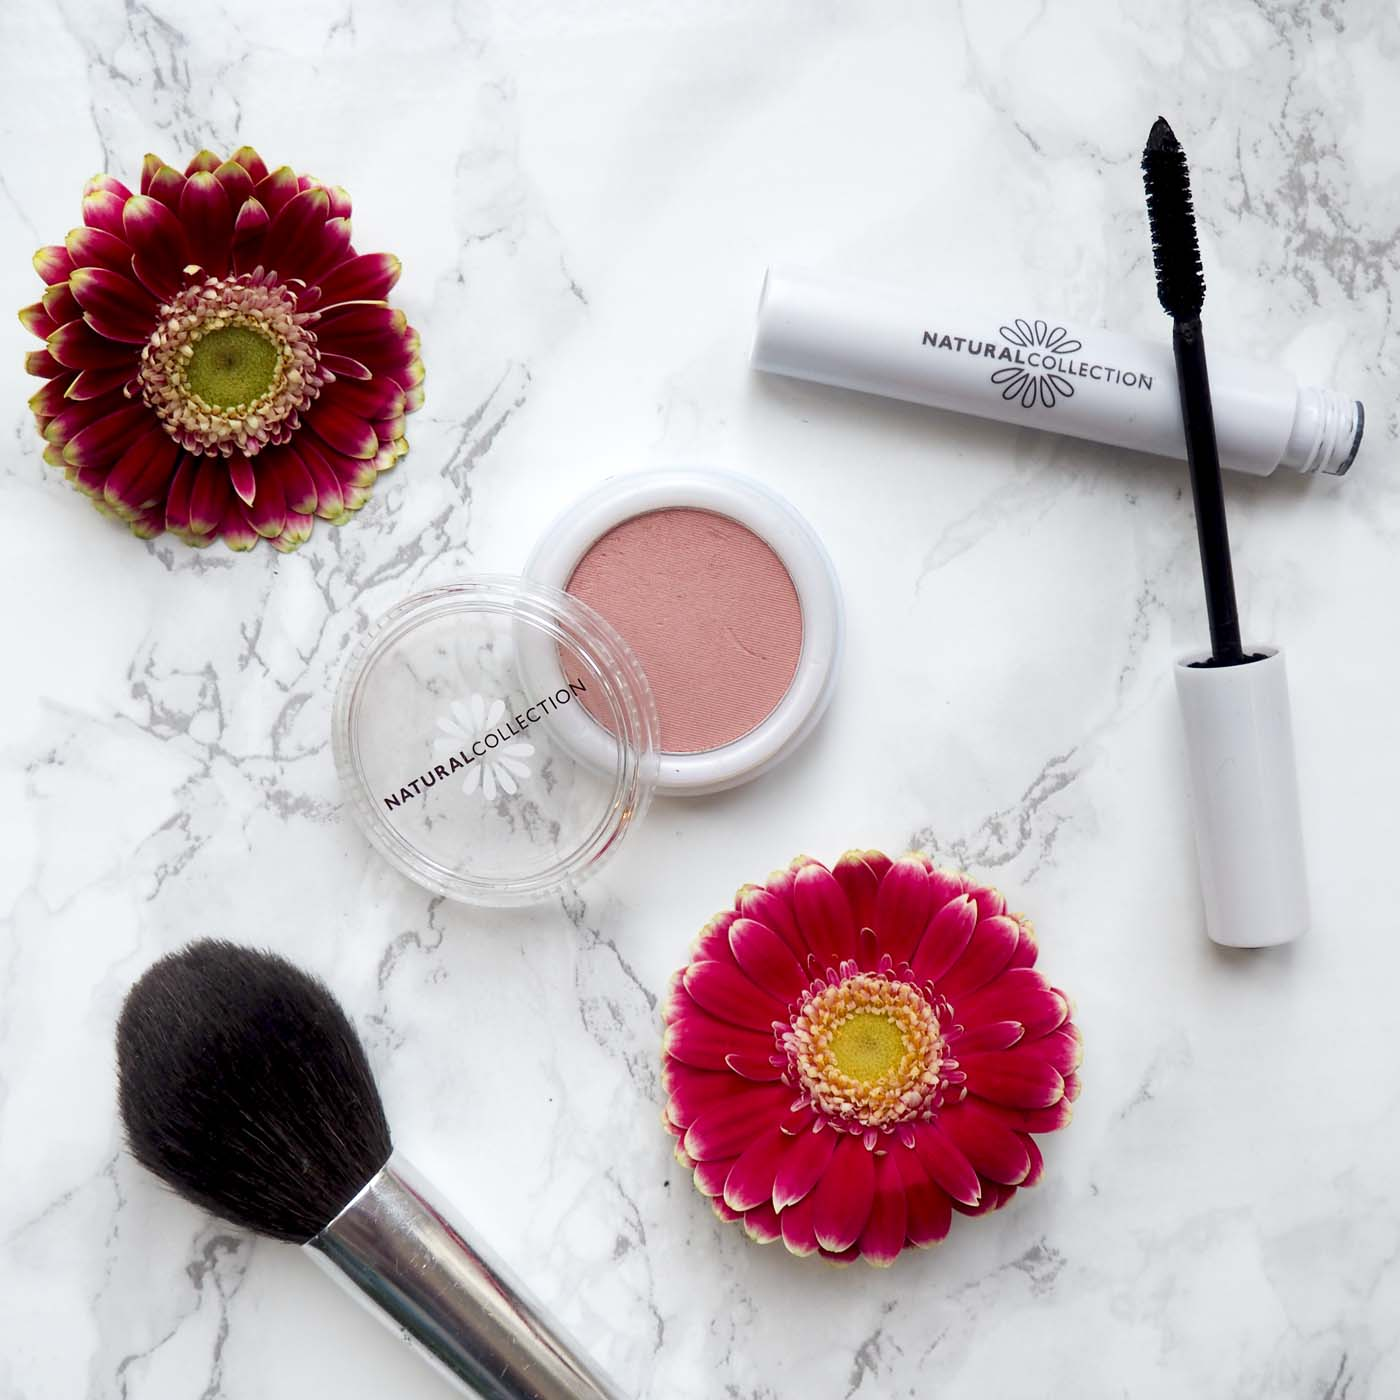 Boots Natural collection make up